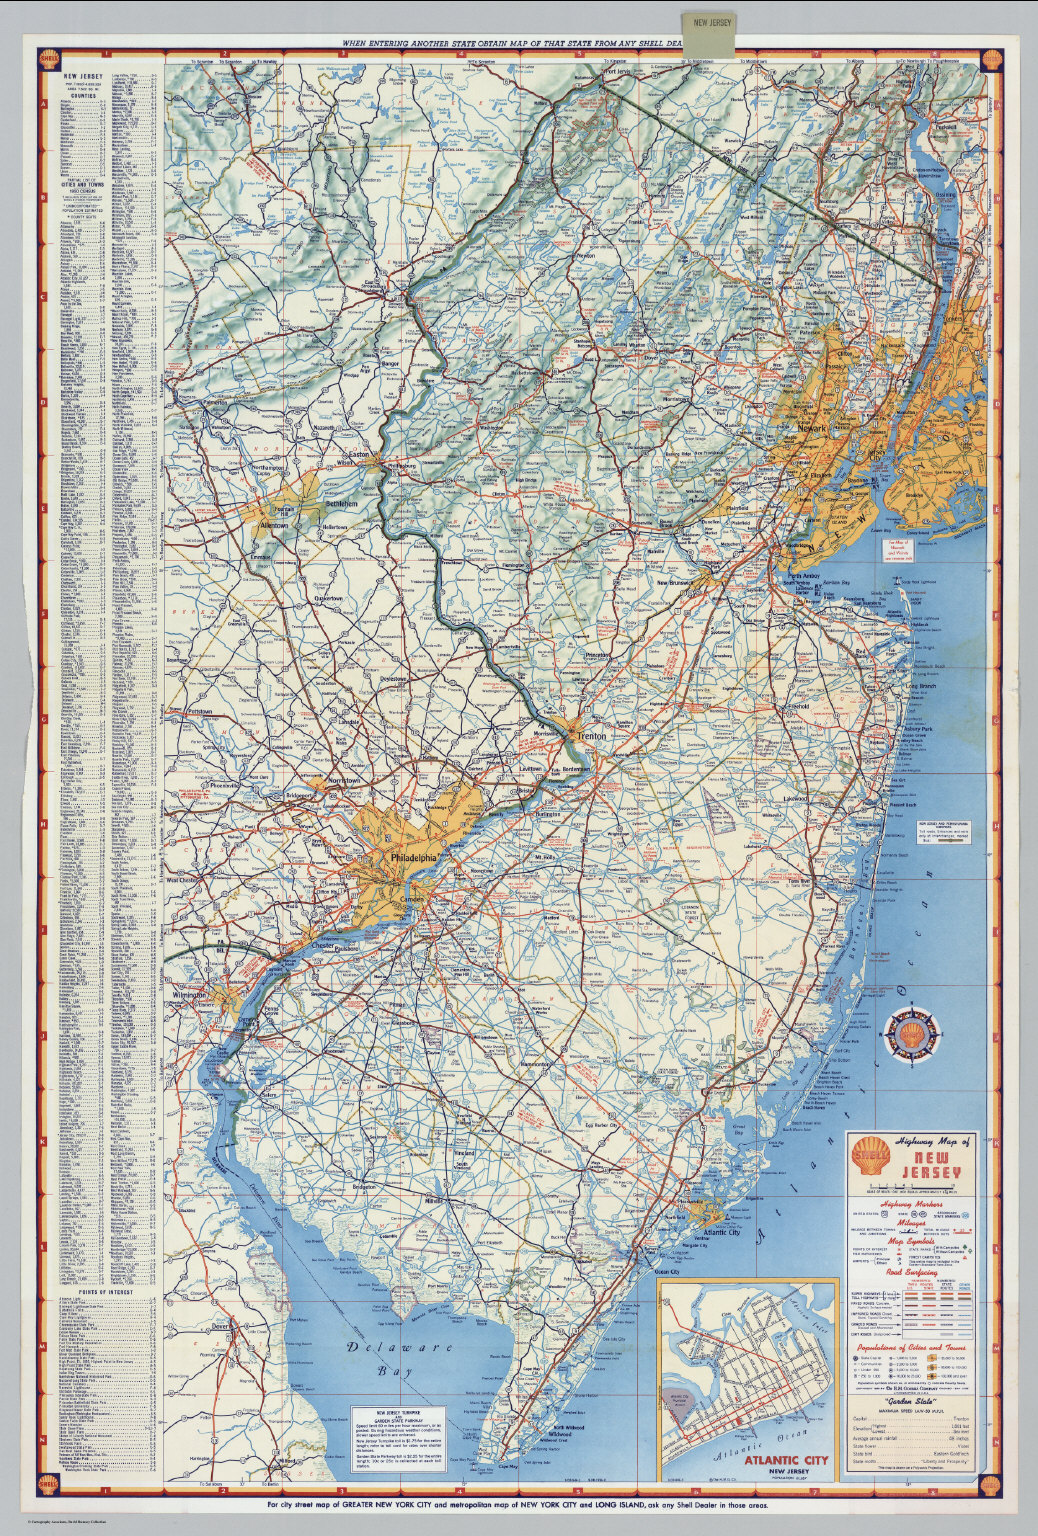 Road Map Of New Jersey Shell Highway Map of New Jersey.   David Rumsey Historical Map  Road Map Of New Jersey